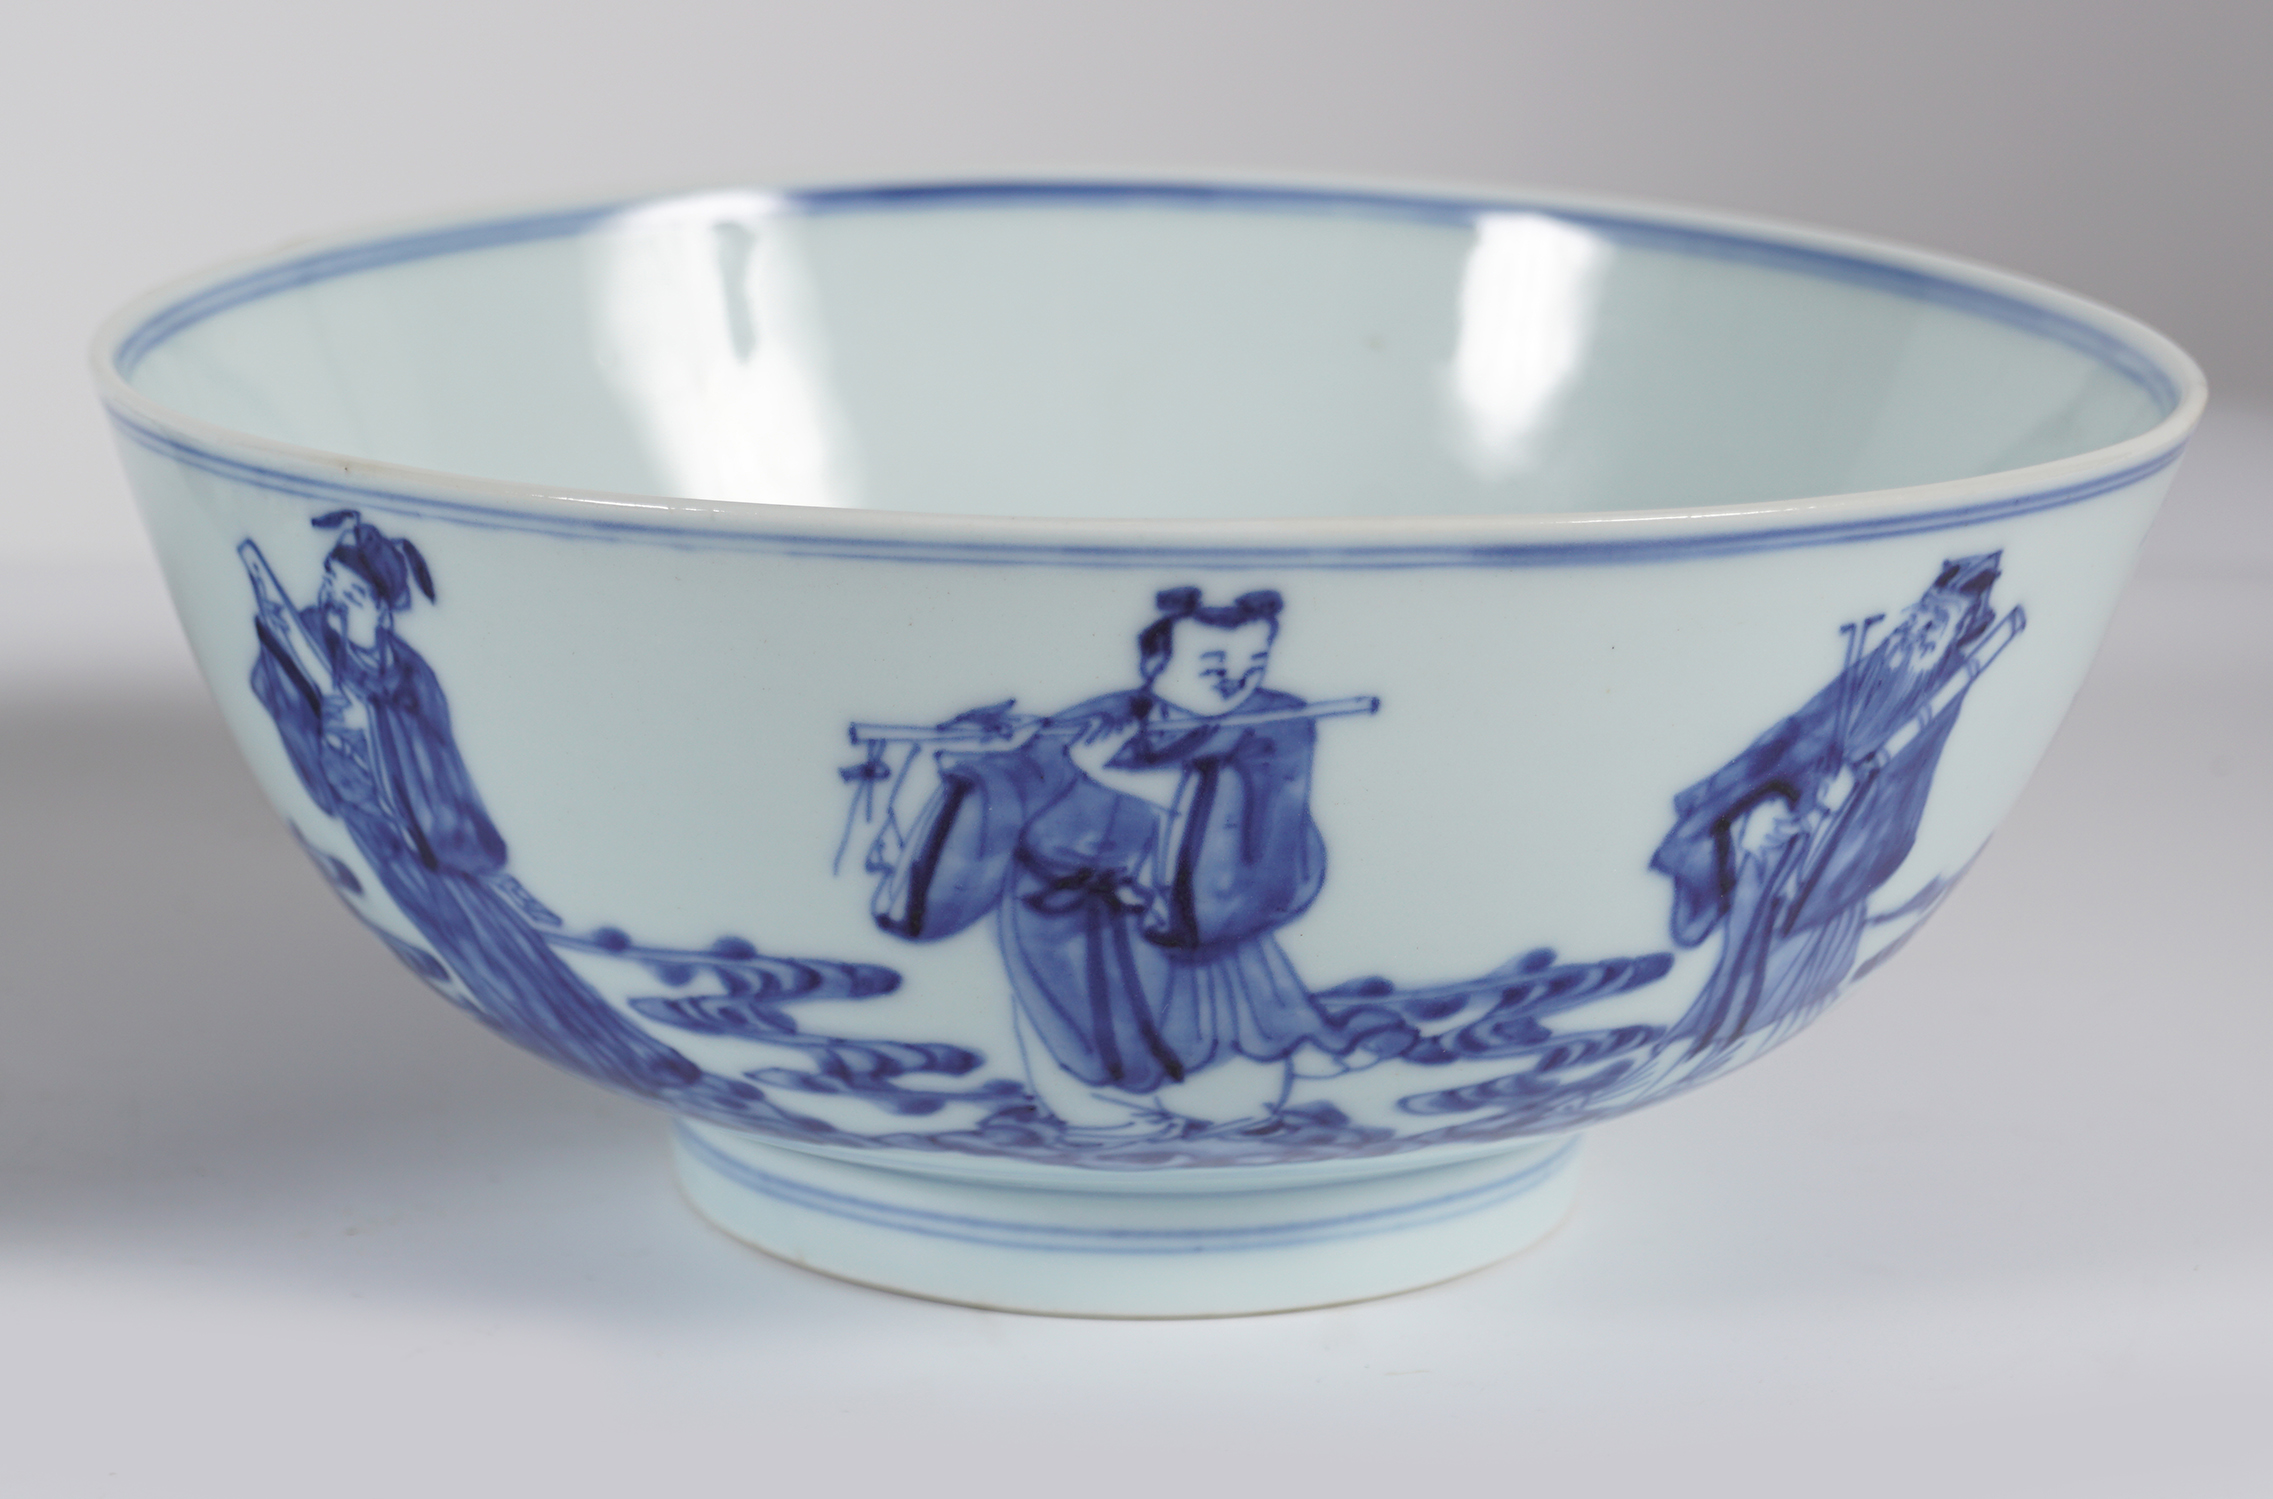 PAIR OF CHINESE BLUE AND WHITE BOWLS - Image 3 of 6